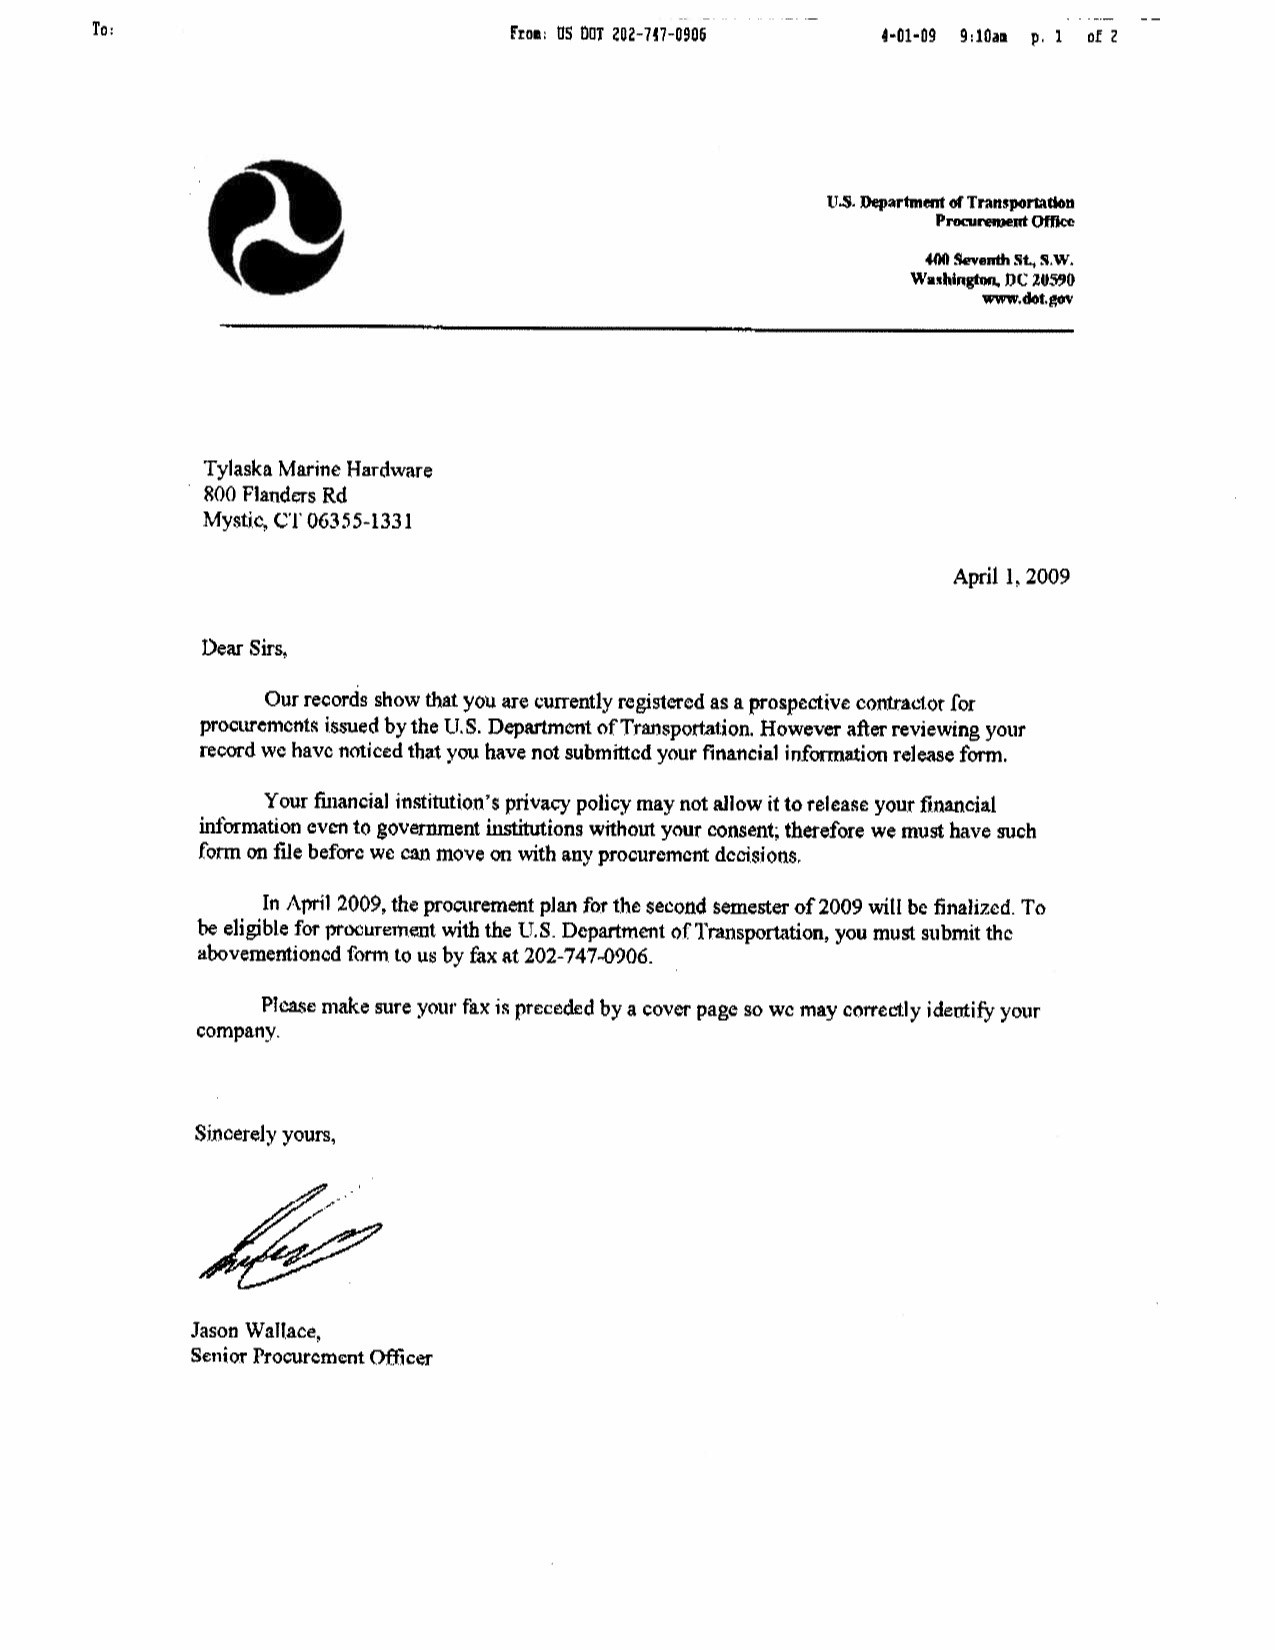 Business Letter Format Requesting Information Image Collections